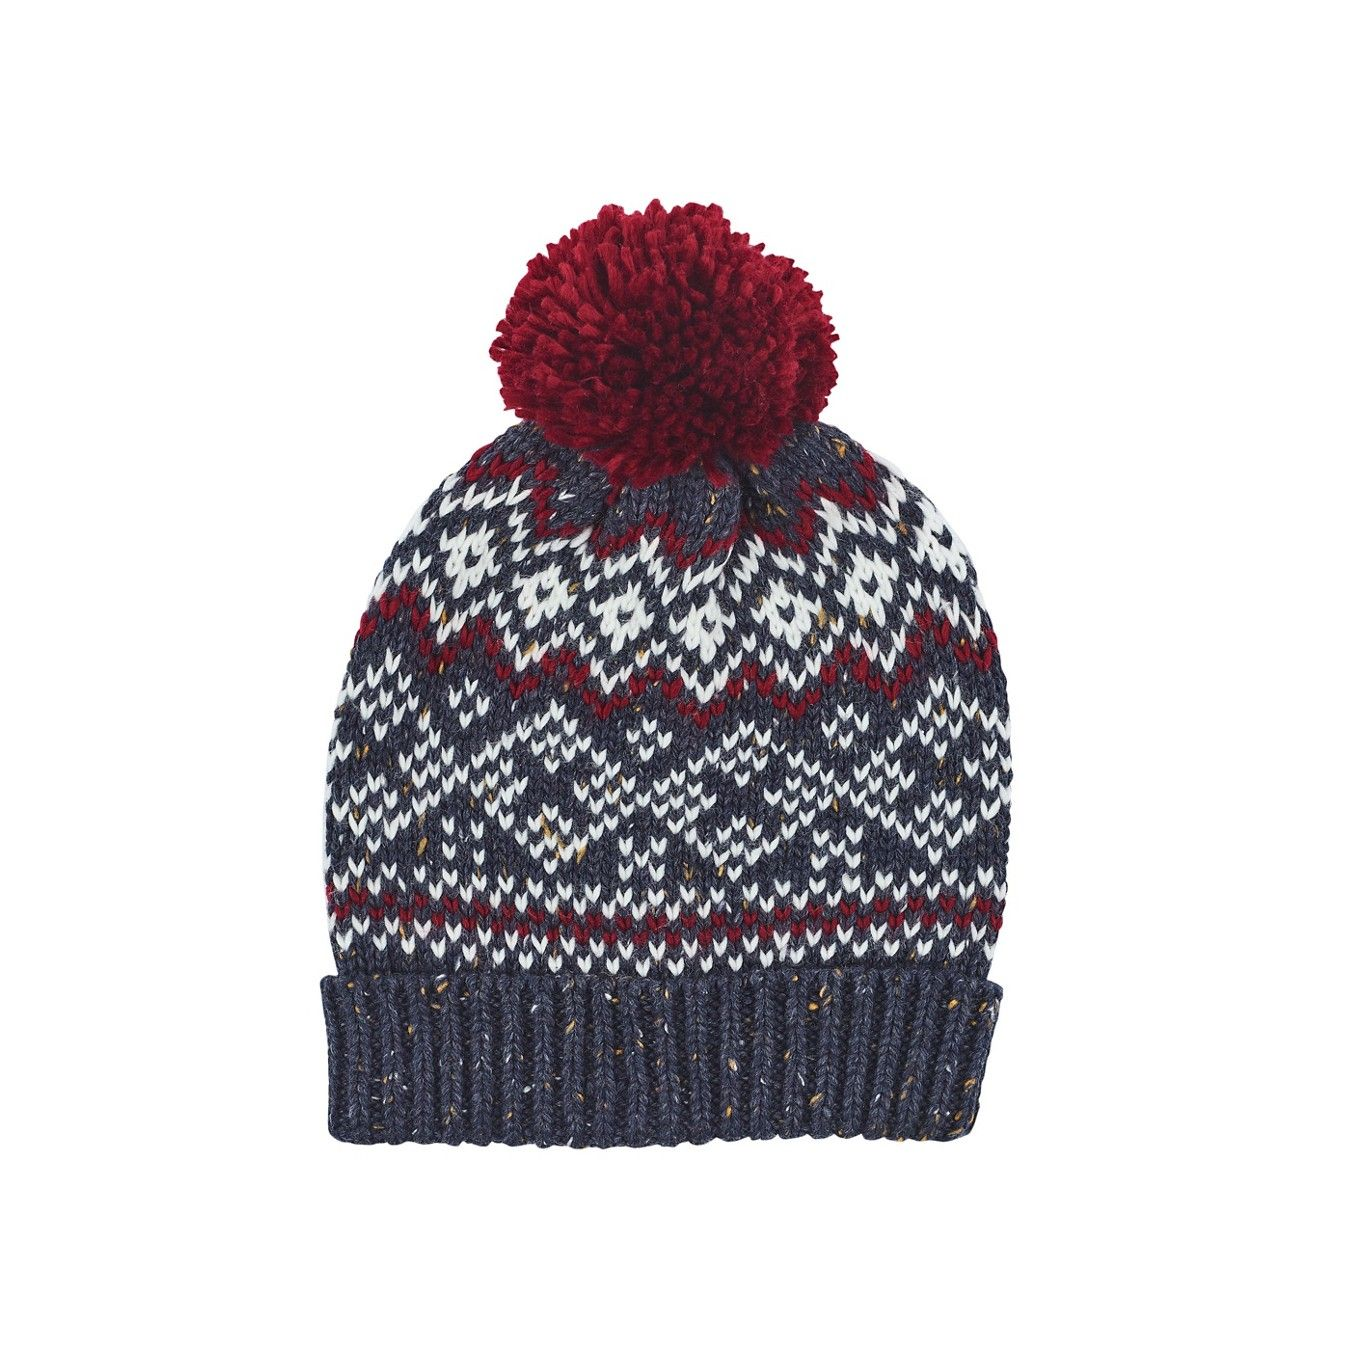 Handknitted Hats in 2019  bf72c5002